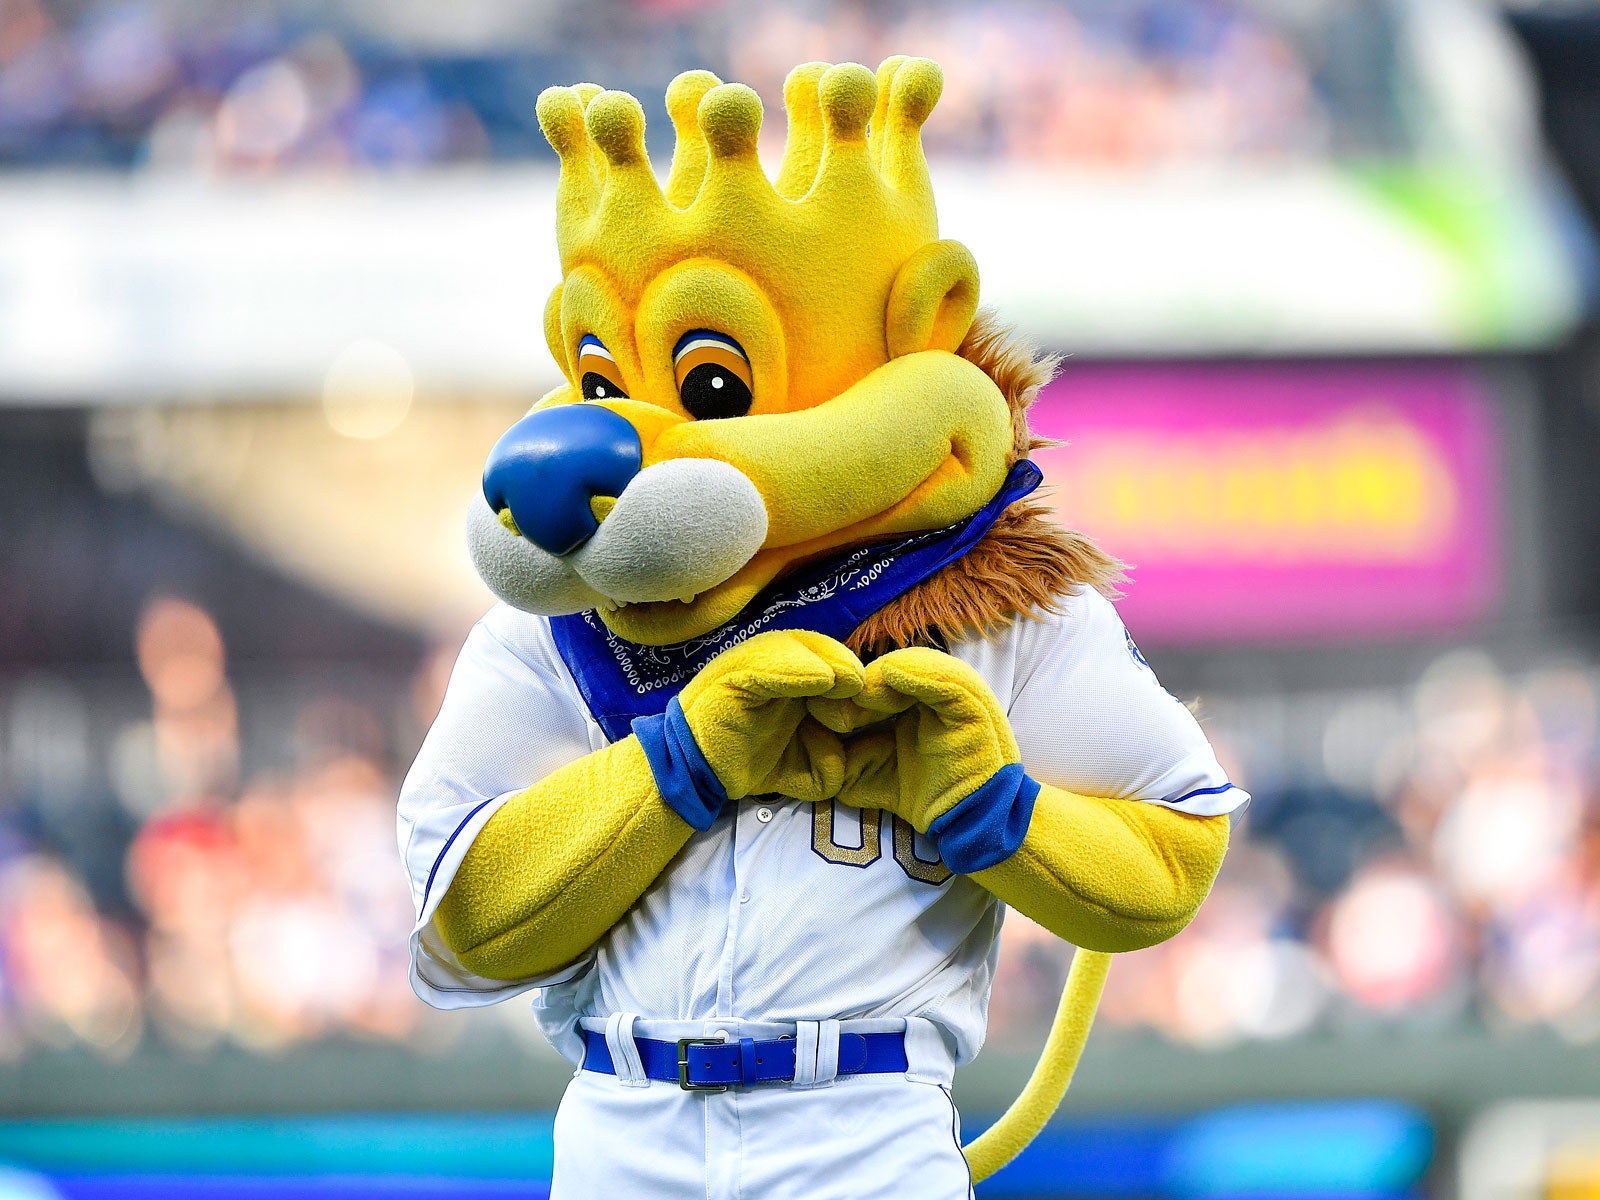 Sluggerrr is the Kansas City Royals mascot